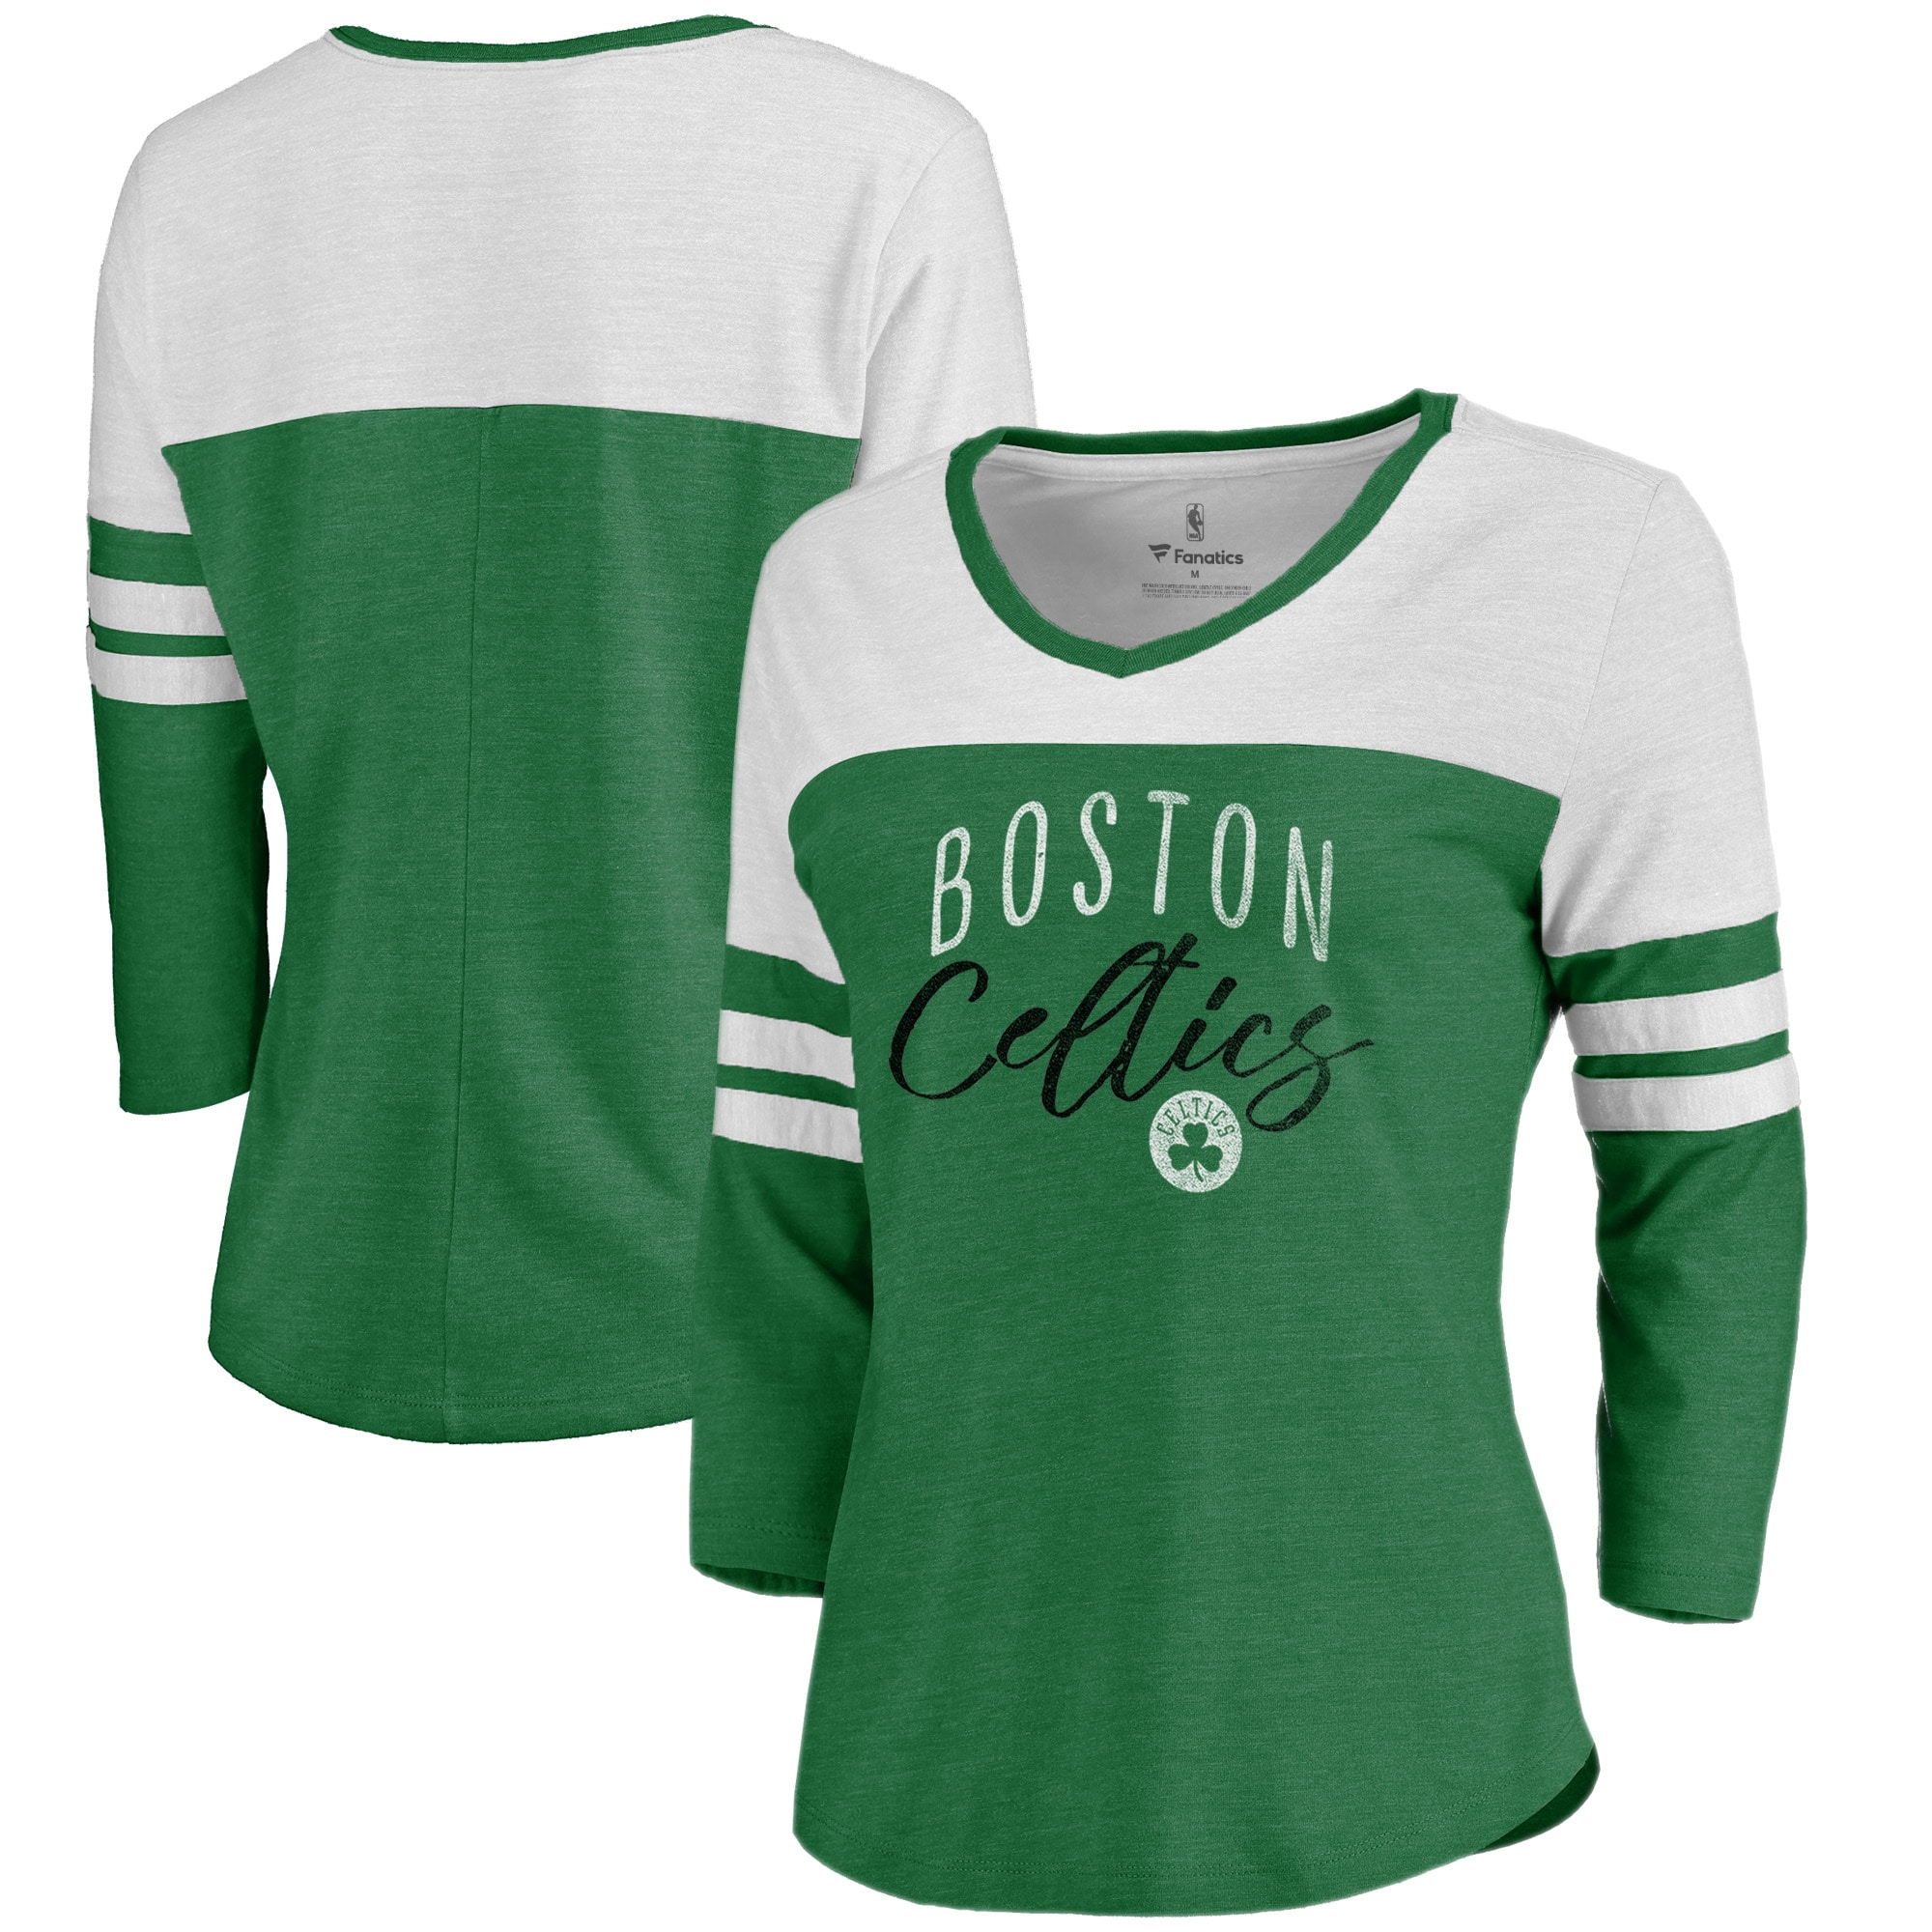 Boston Celtics Fanatics Branded Women's Graceful 3/4-Sleeve Raglan T-Shirt - Heathered Kelly Green